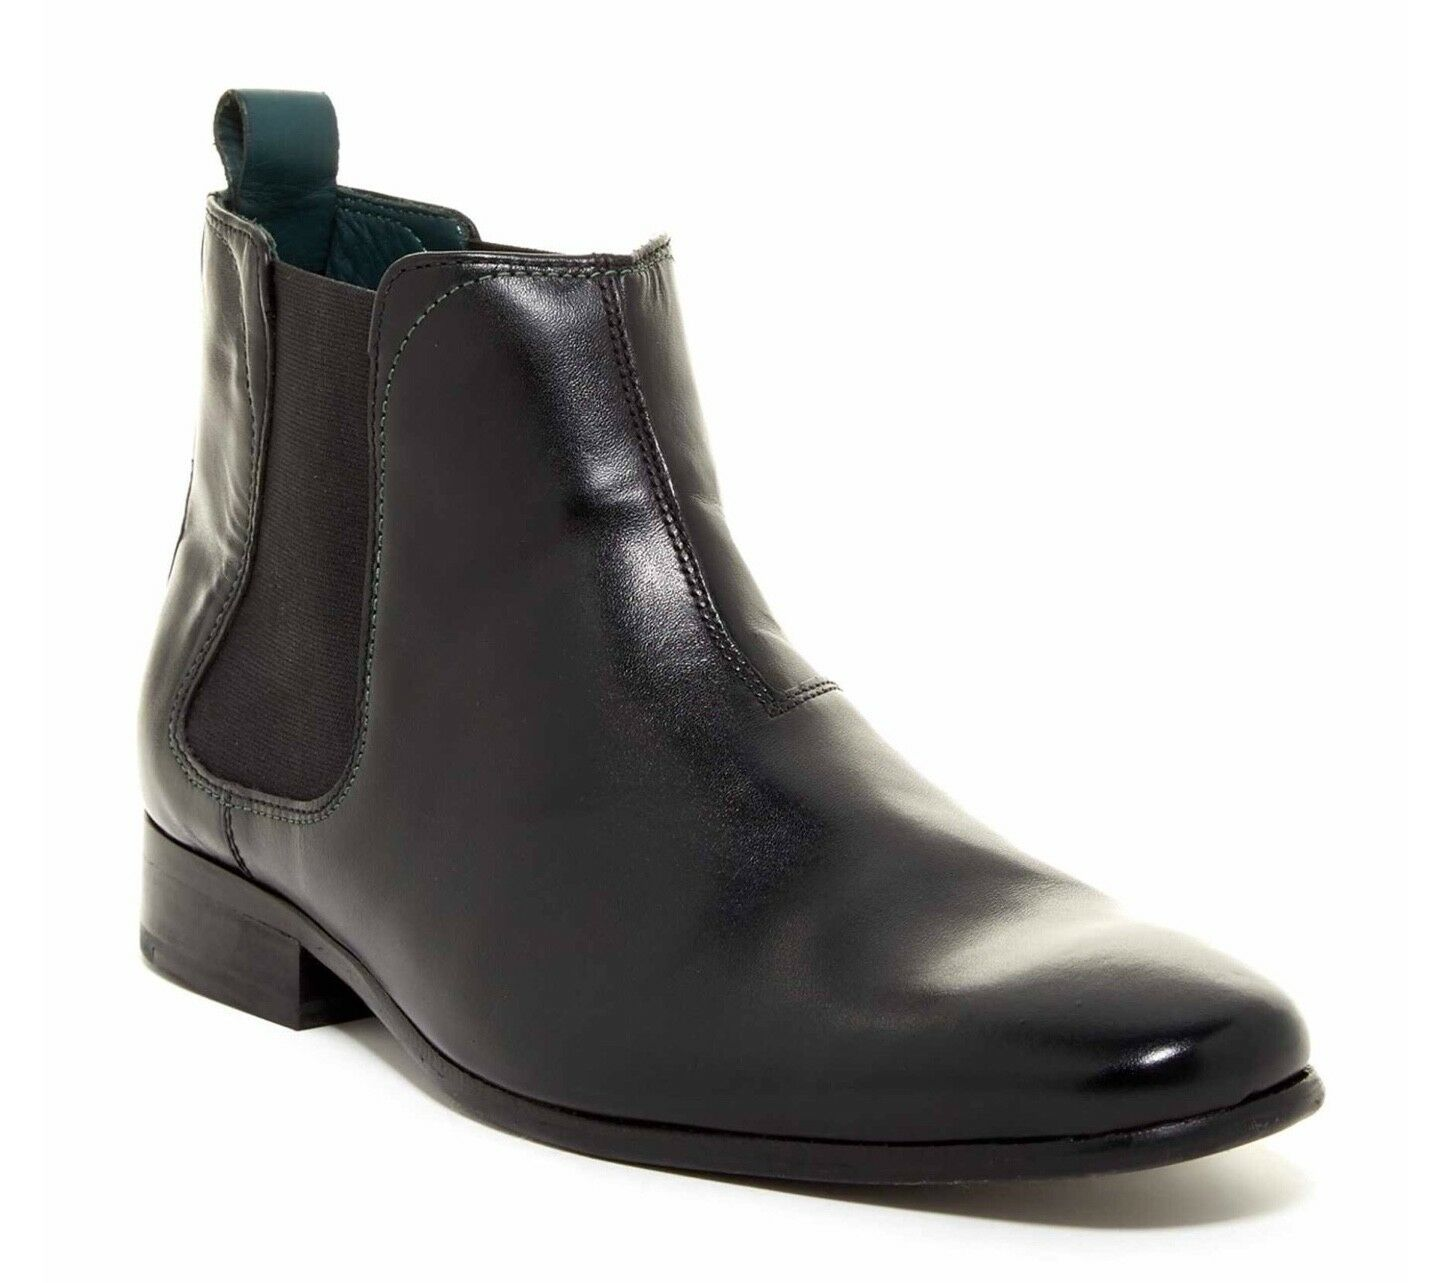 TED BAKER LONDON BUURG LEATHER CHELSEA BOOT NEW W/BOX SIZE 11